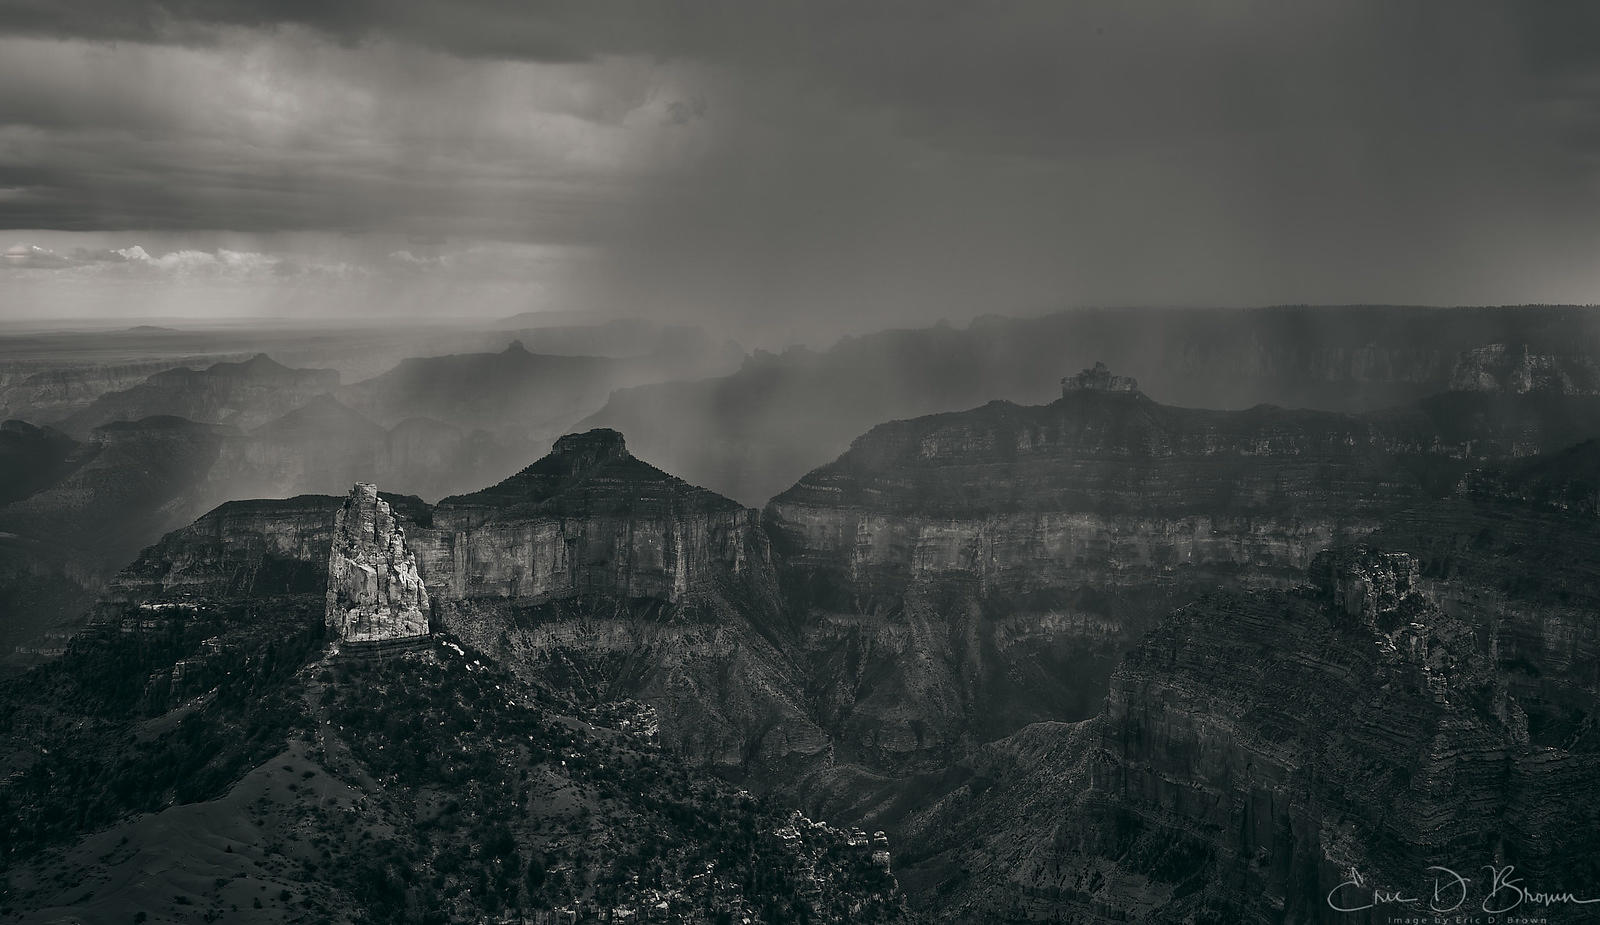 _2EB1663_3_1_-_Grand_Canyon_-_Copyright_2019_-_Eric_D._Brown